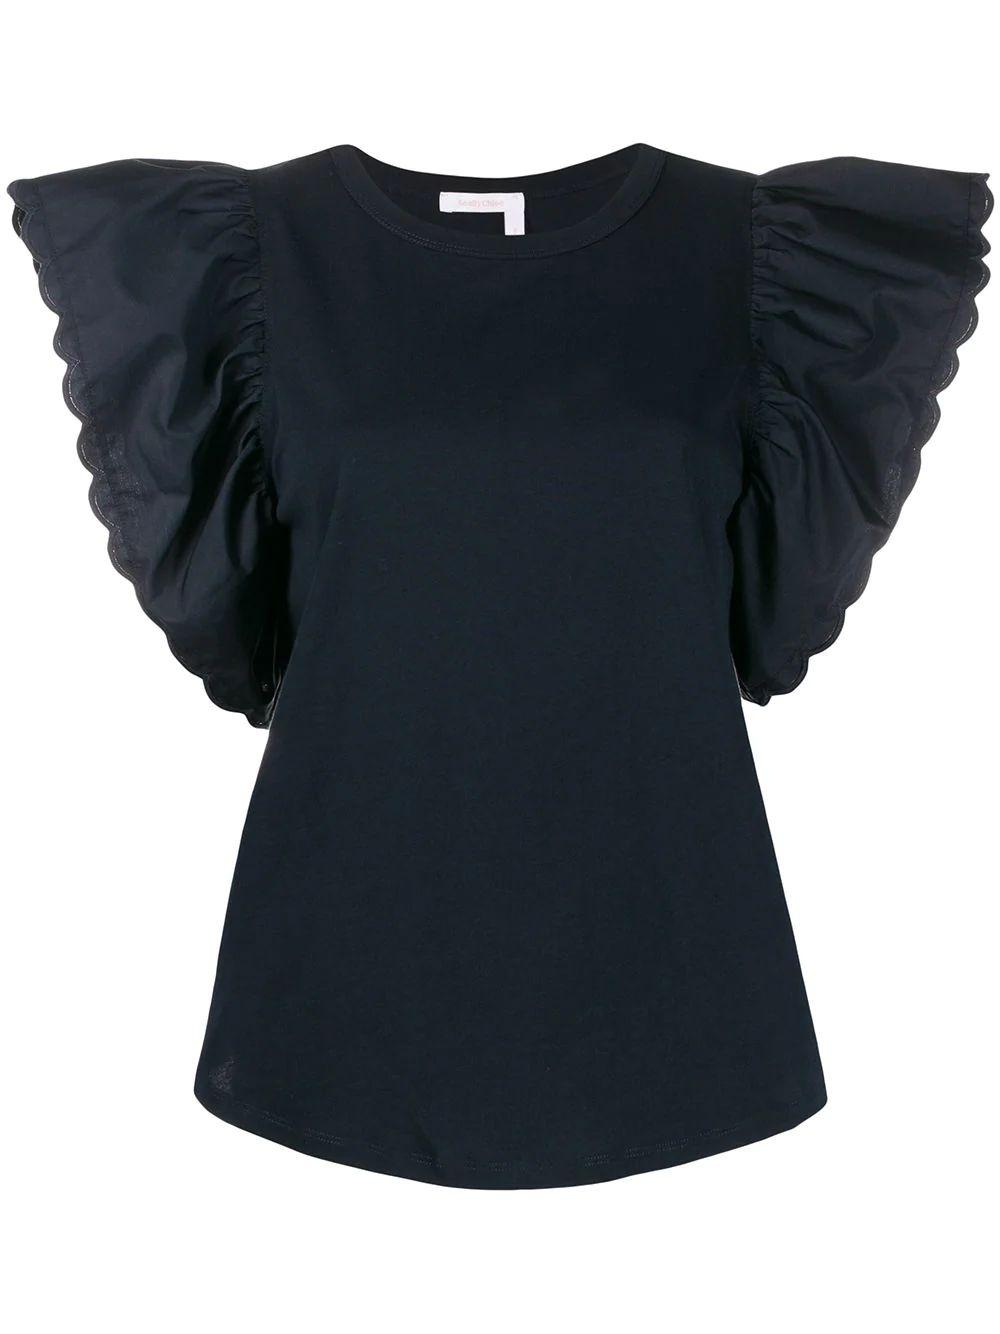 Emb Tee With Oversized Ruffle Sleeve